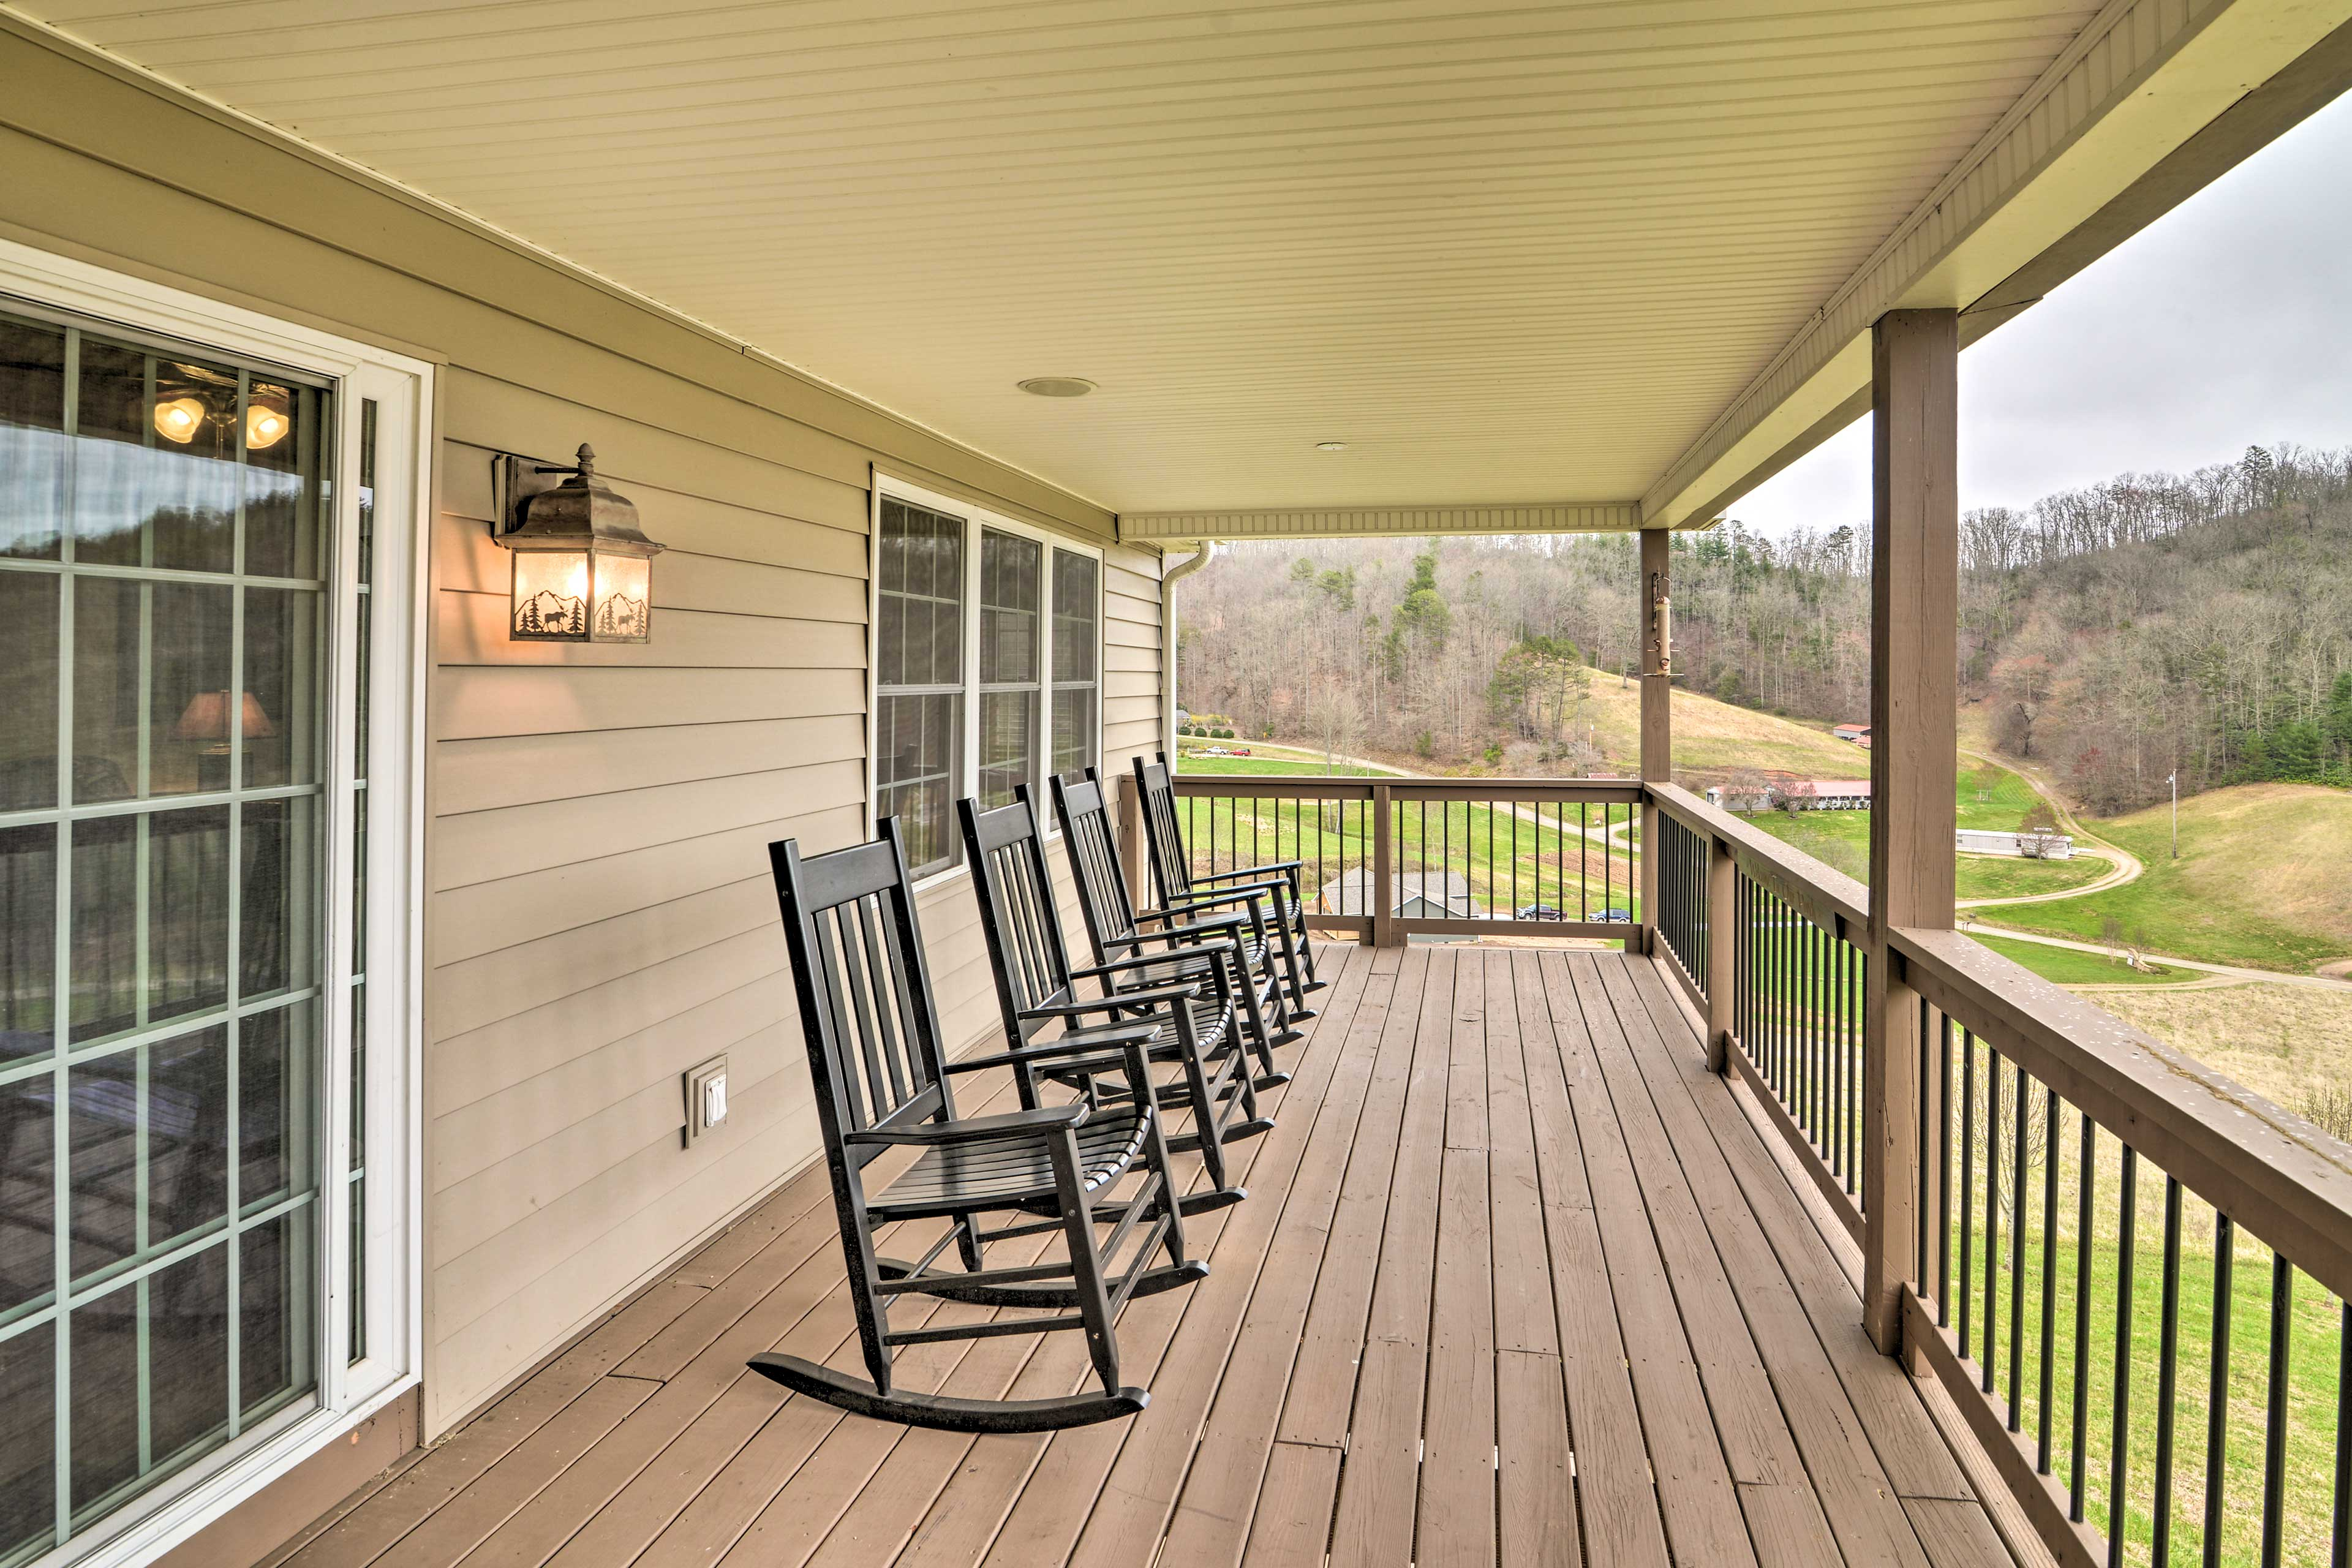 Hang out in the fresh air on one of the home's multiple decks!